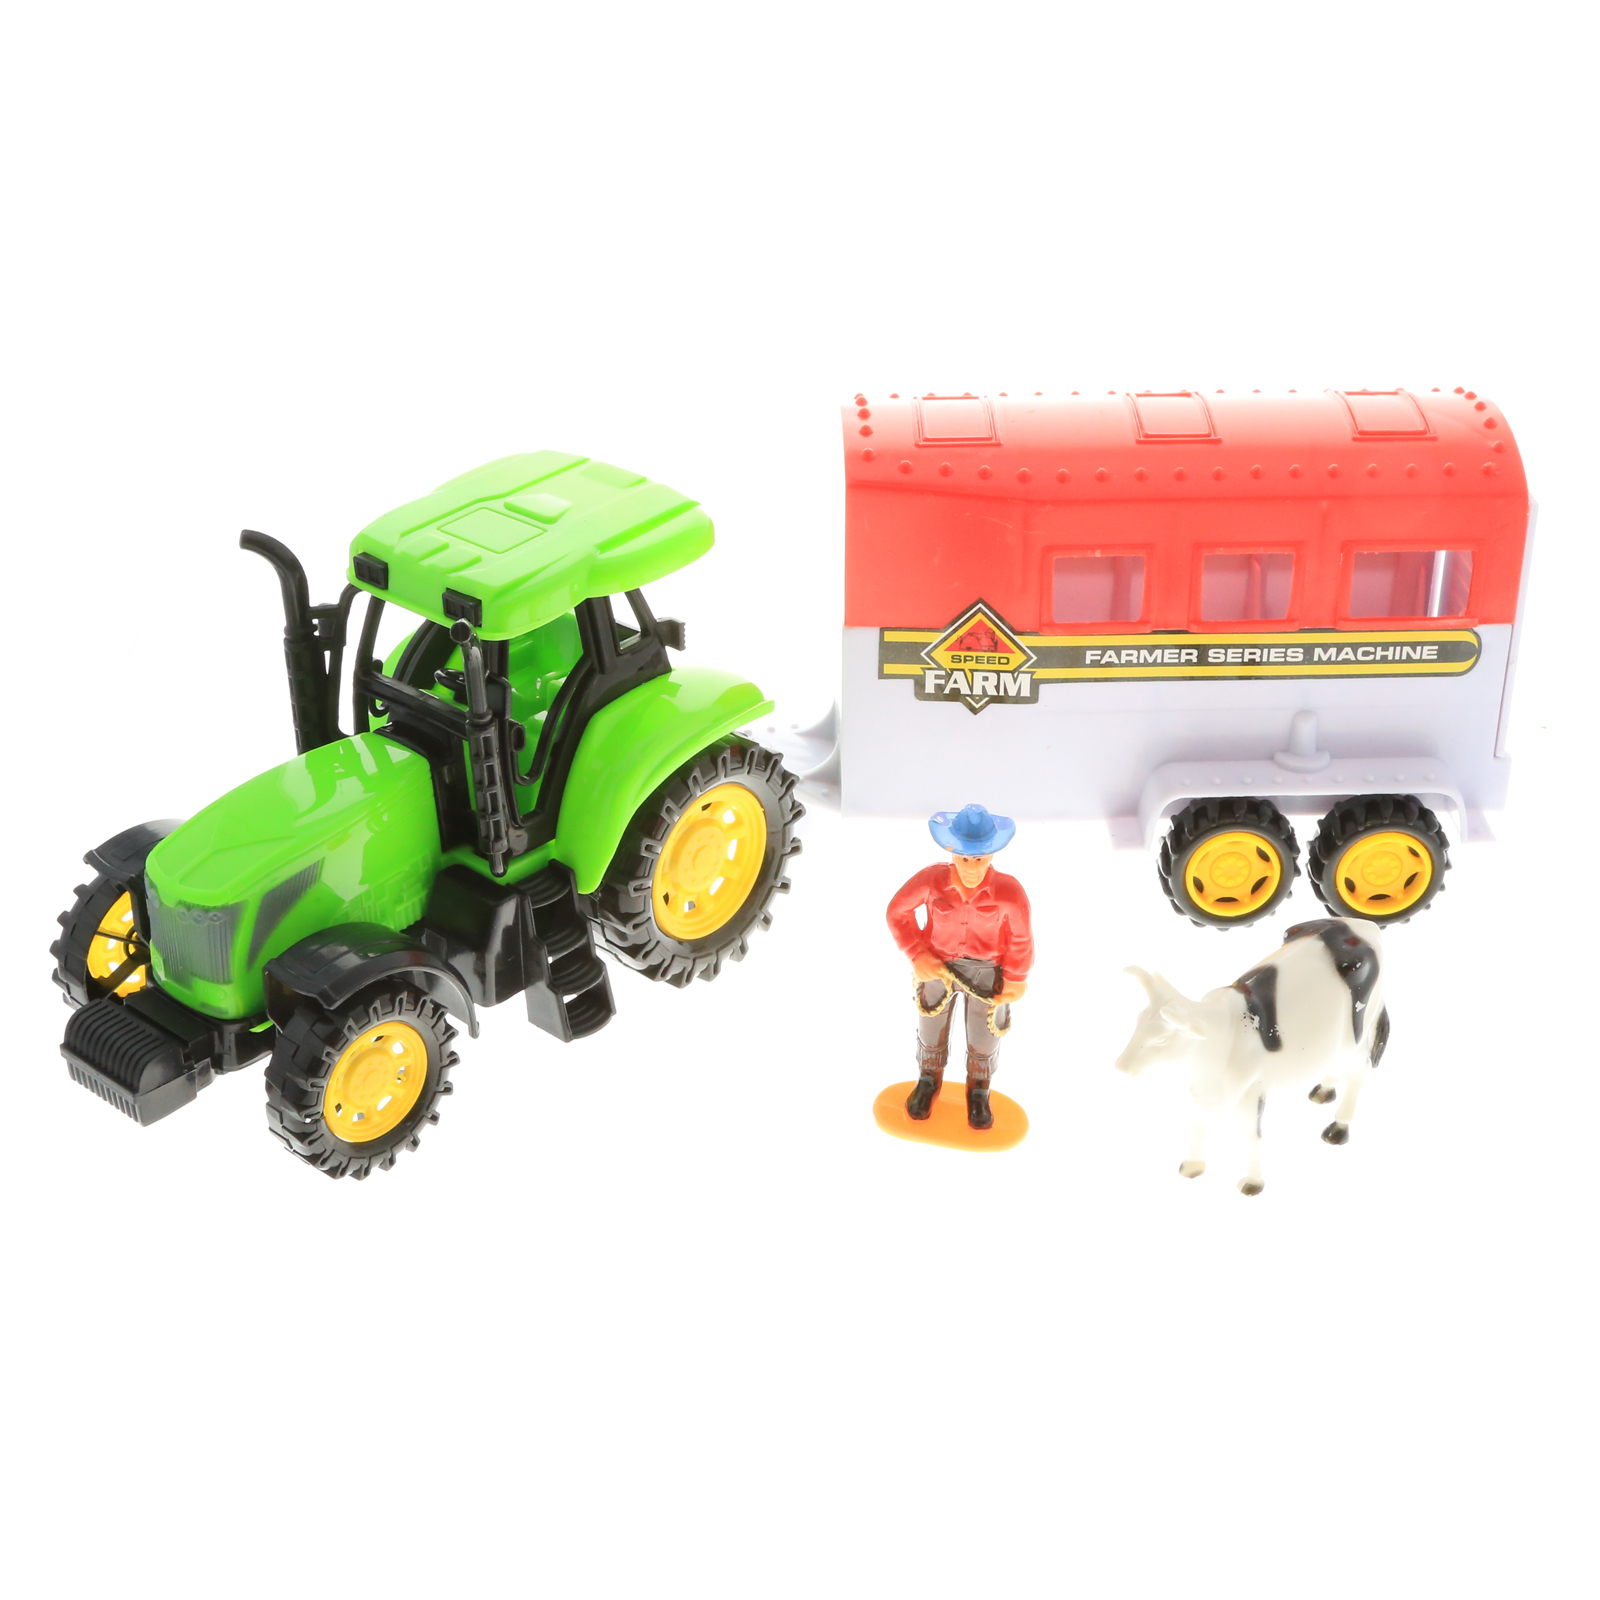 KidPlay Kids Friction Powered Farm Tractor Play Set Tractor Figurines (2 Styles) by KidPlay Products